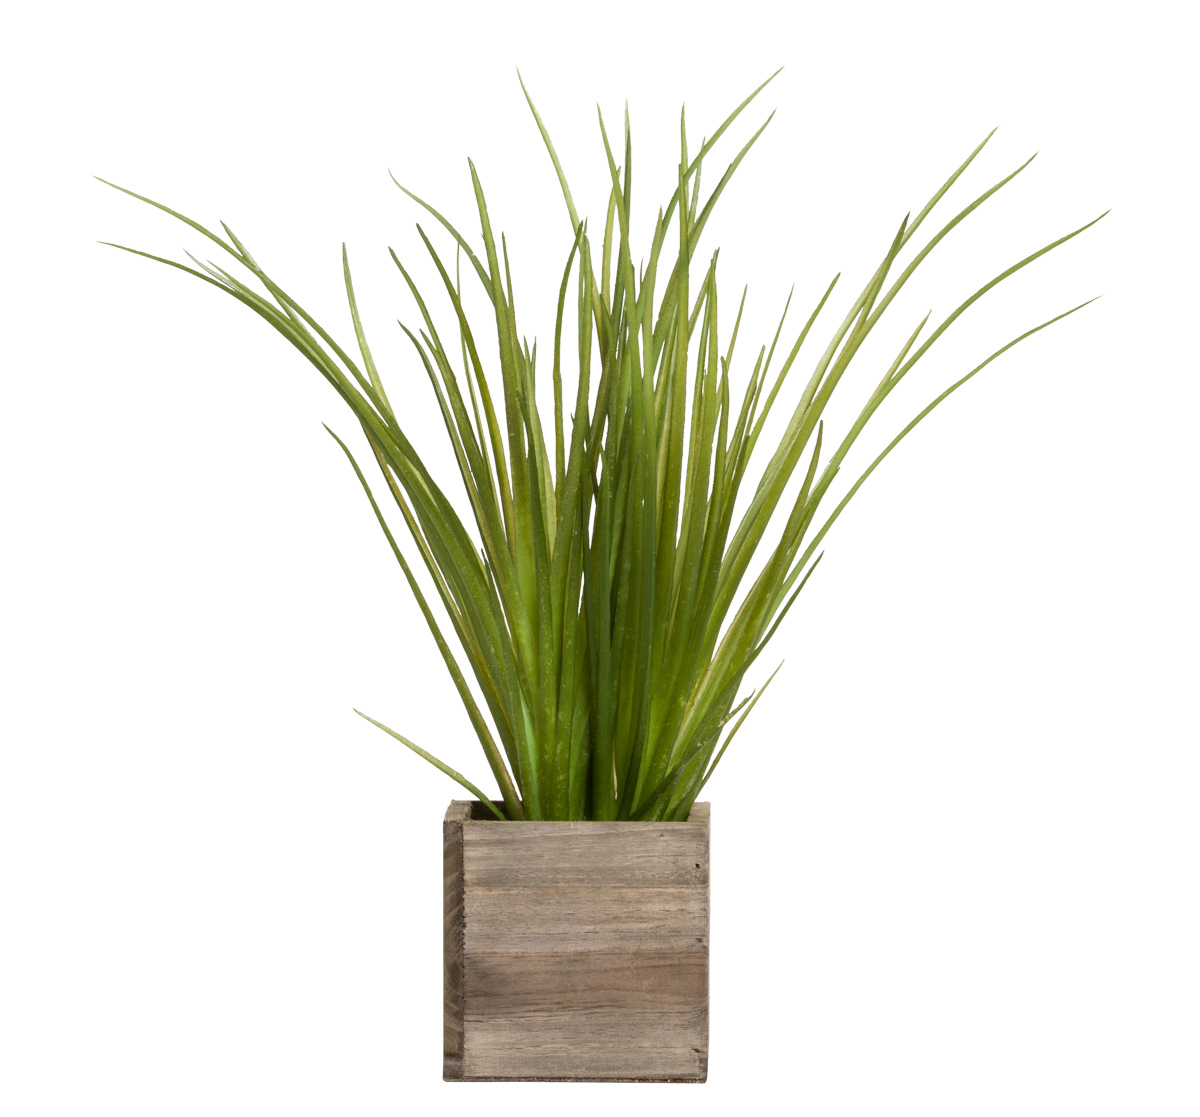 GRASS IN SMALL WOOD BOX